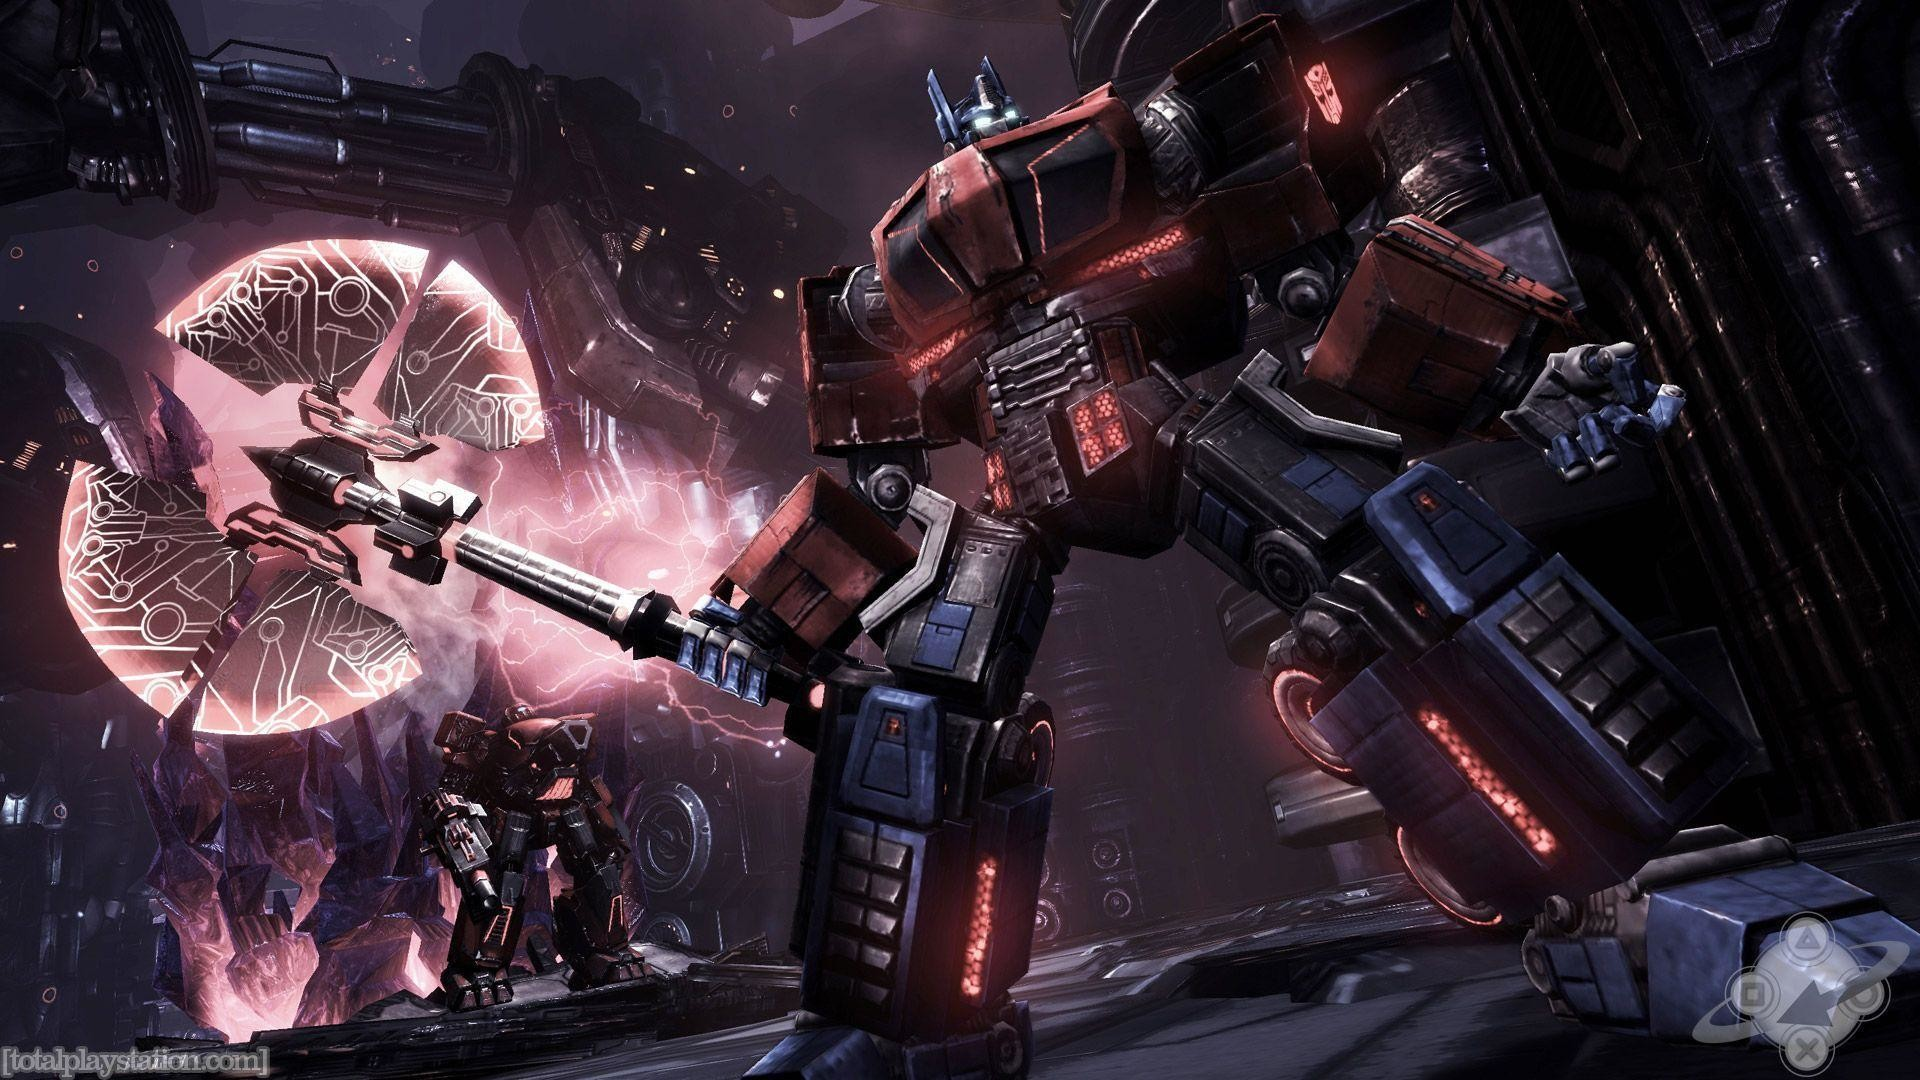 transformers cybertron wallpaper (80+ images)